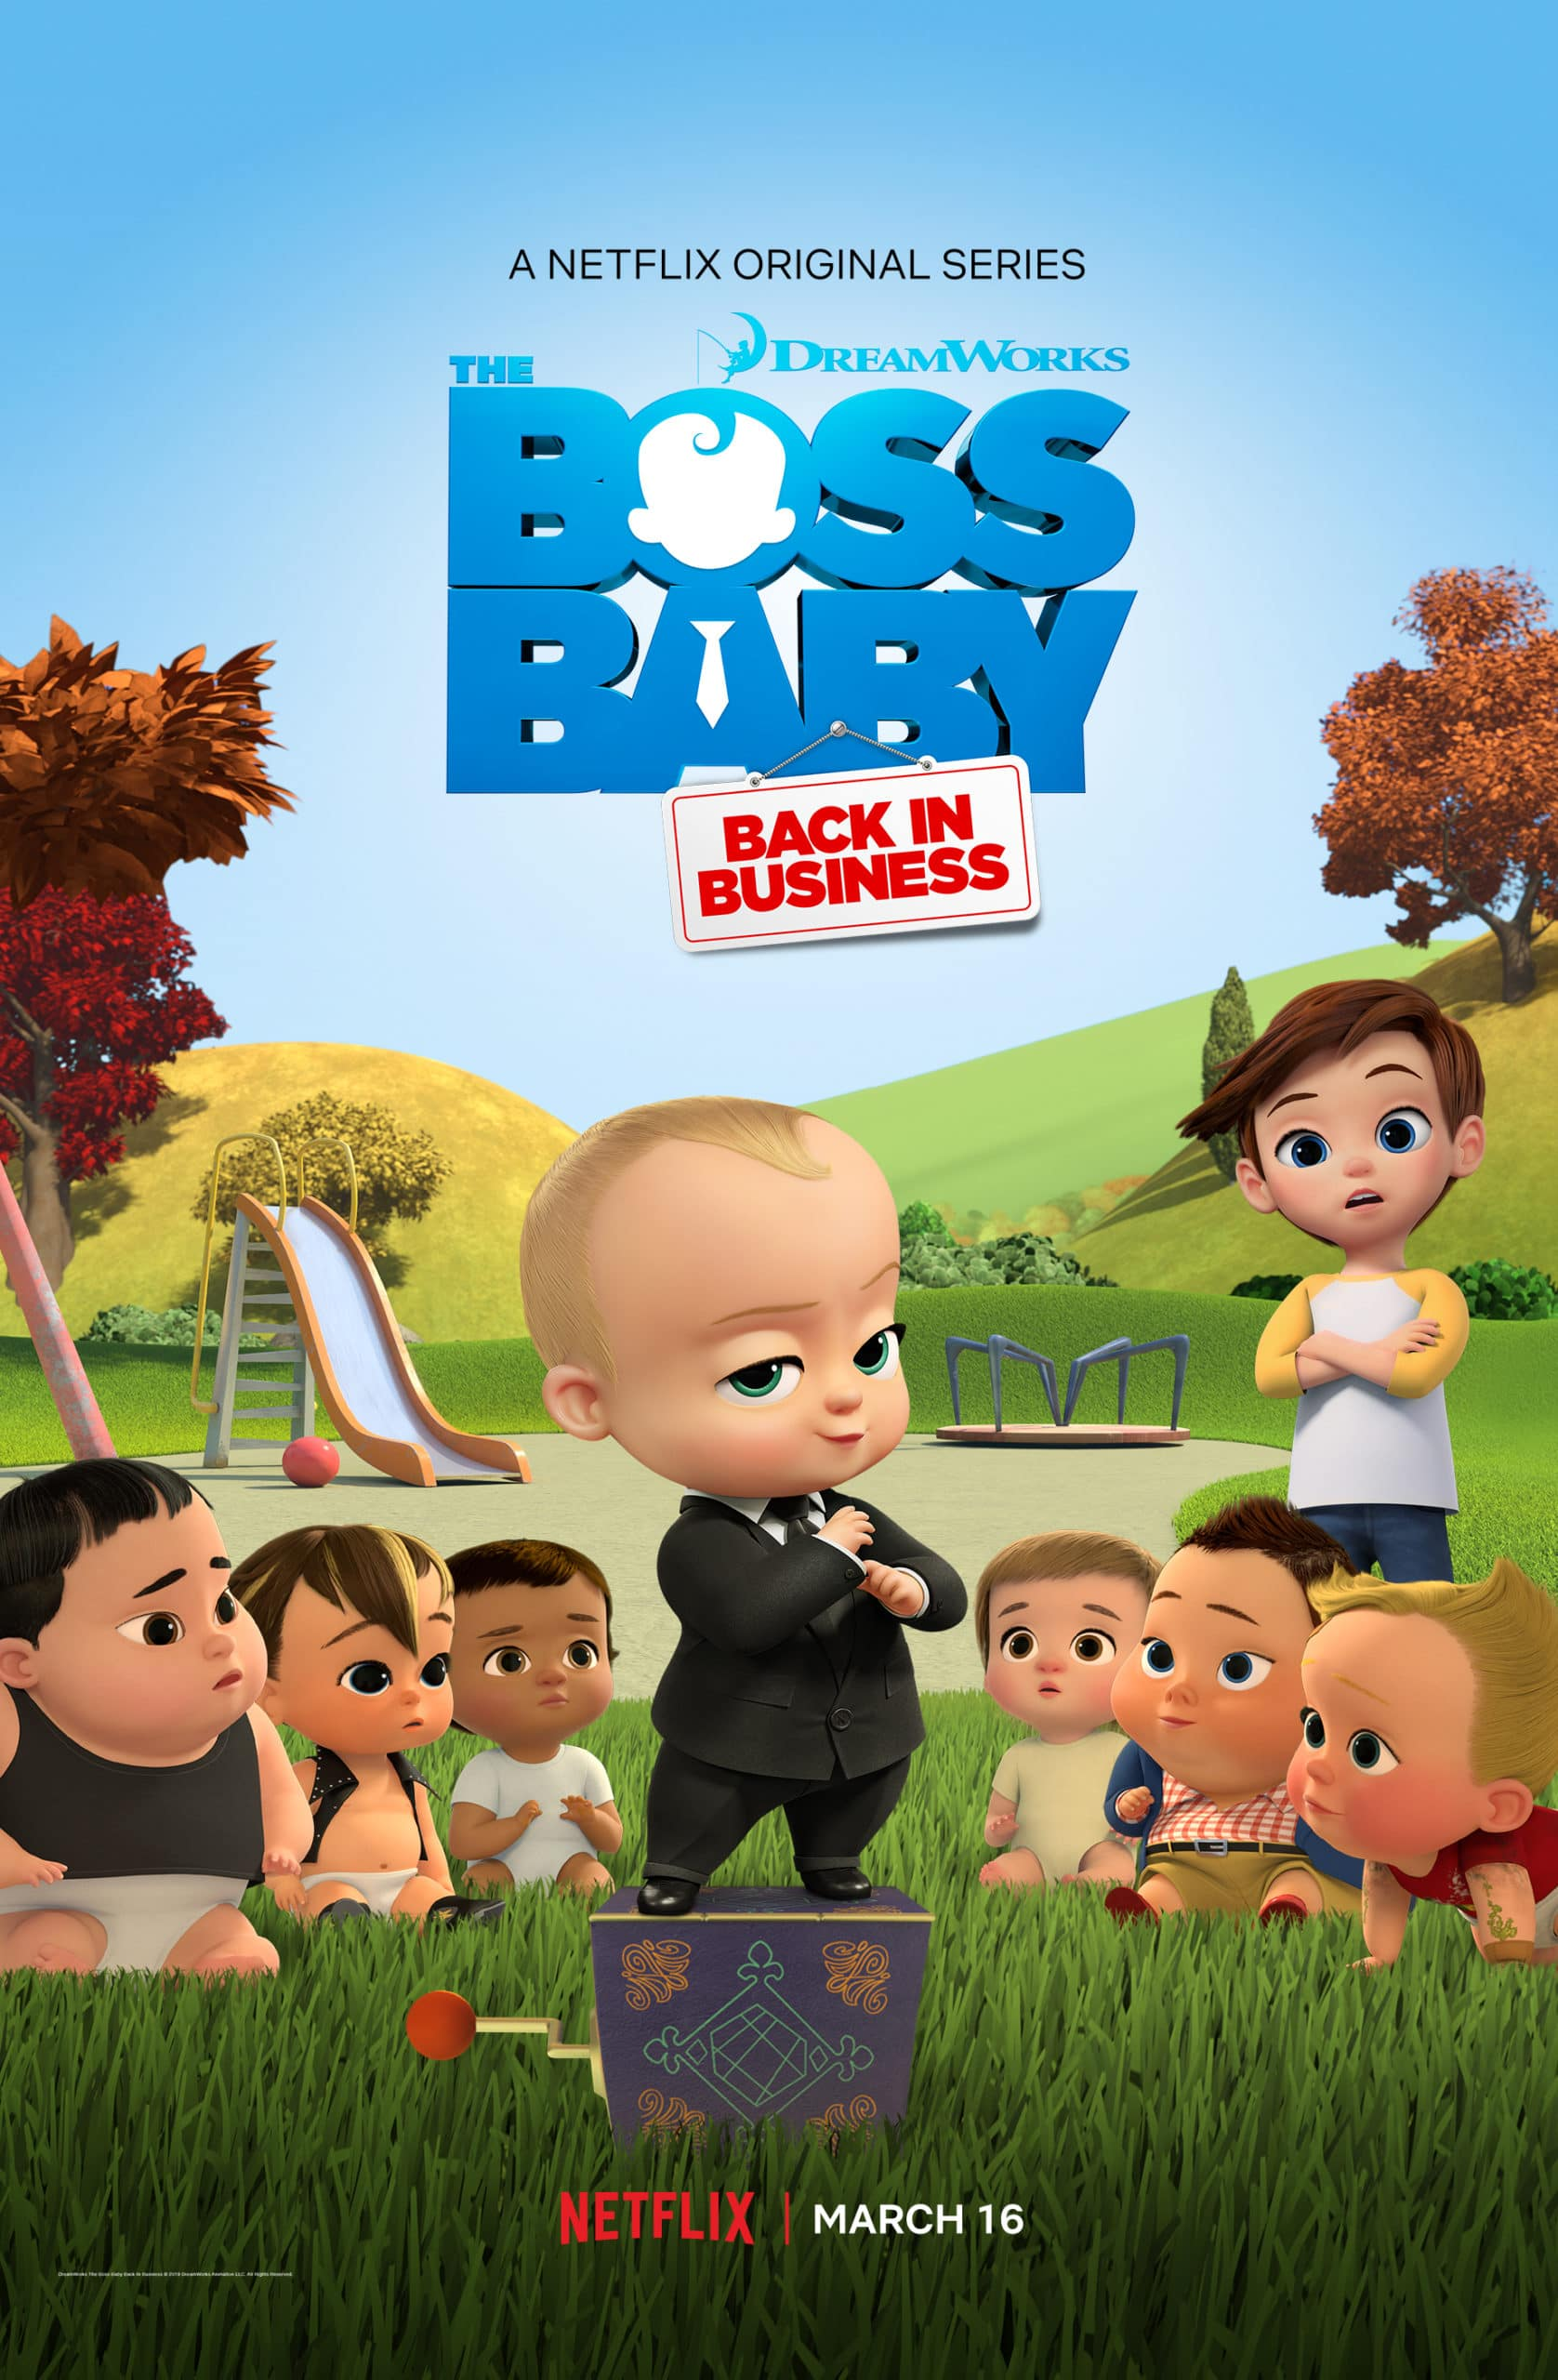 Boss Baby Season 3 Back In Business - Netflix Premiere March 16. The boss is back, baby! After a long sabbatical everyone's favorite modern career baby makes a comeback in the newly launched Season 3 trailer for ?DreamWorks The Boss Baby Back in Business?.